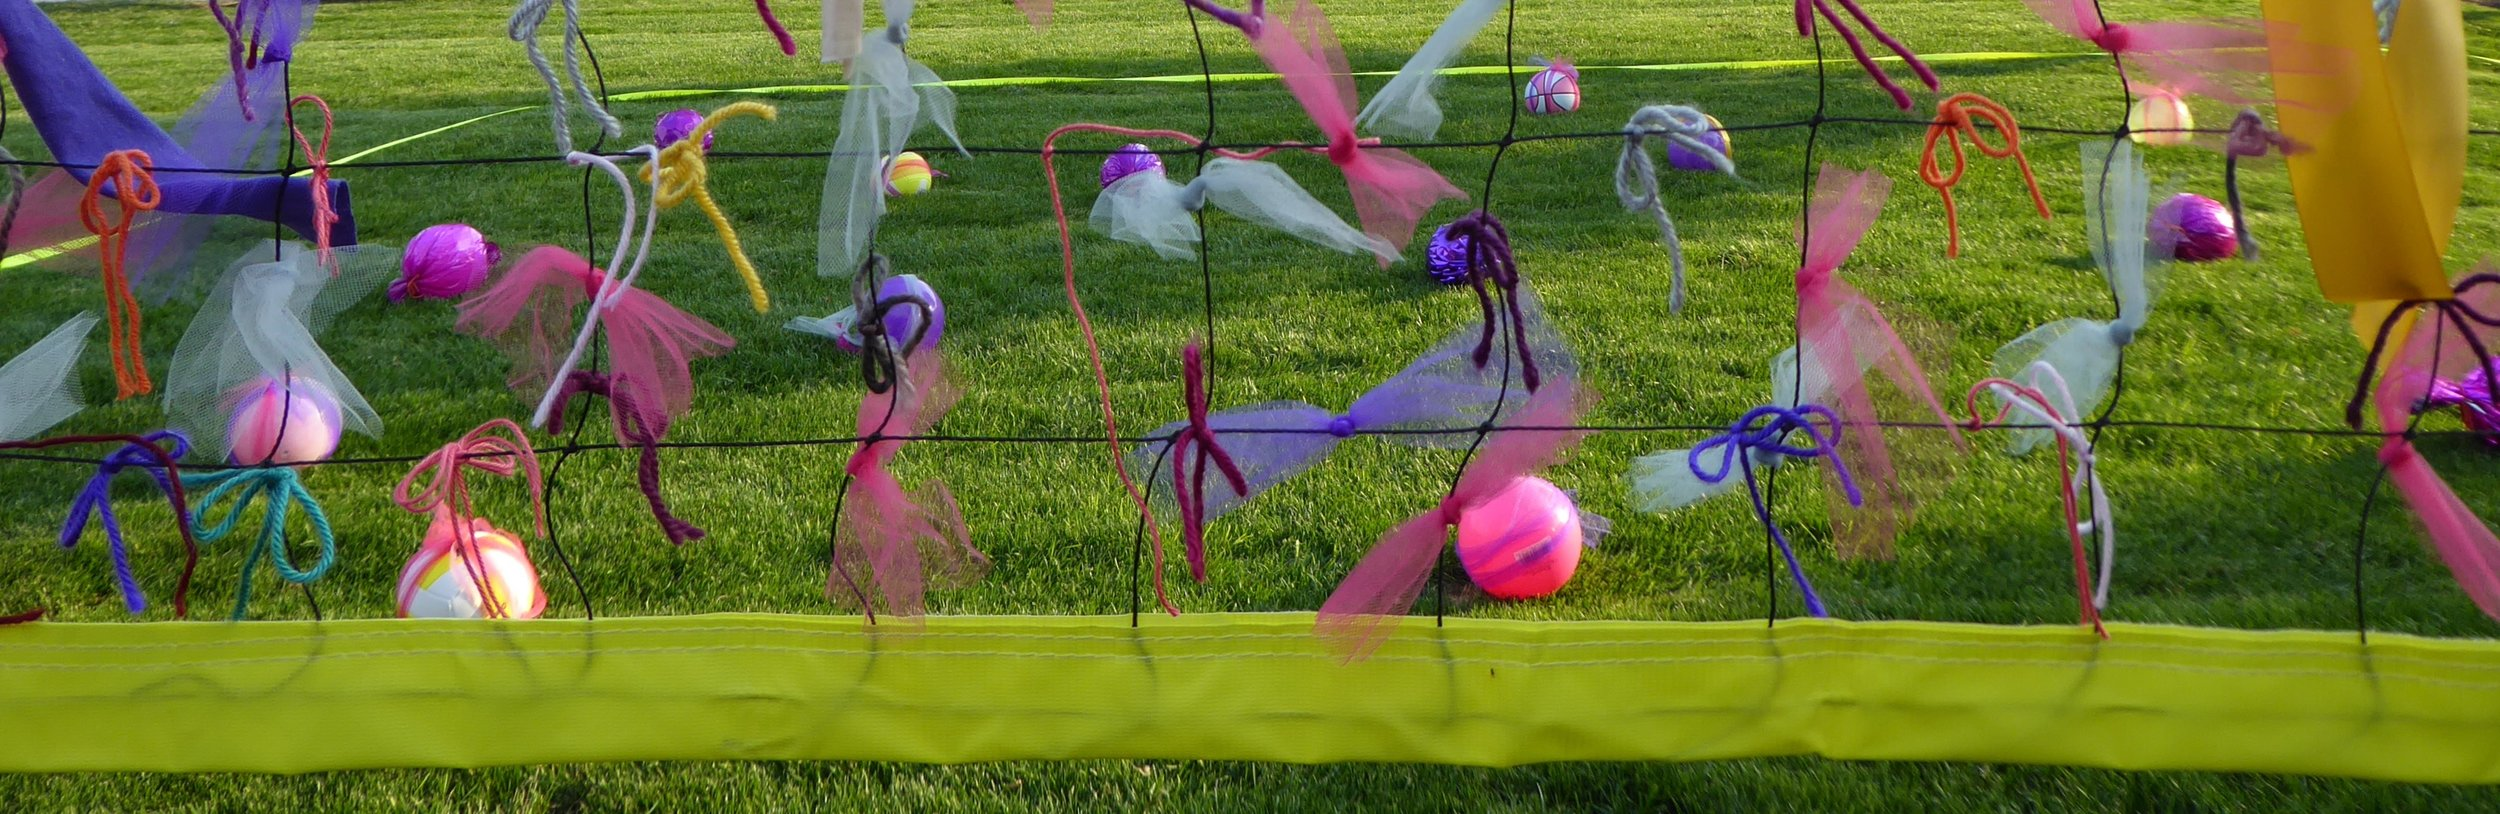 Detail of embellished volleyball net